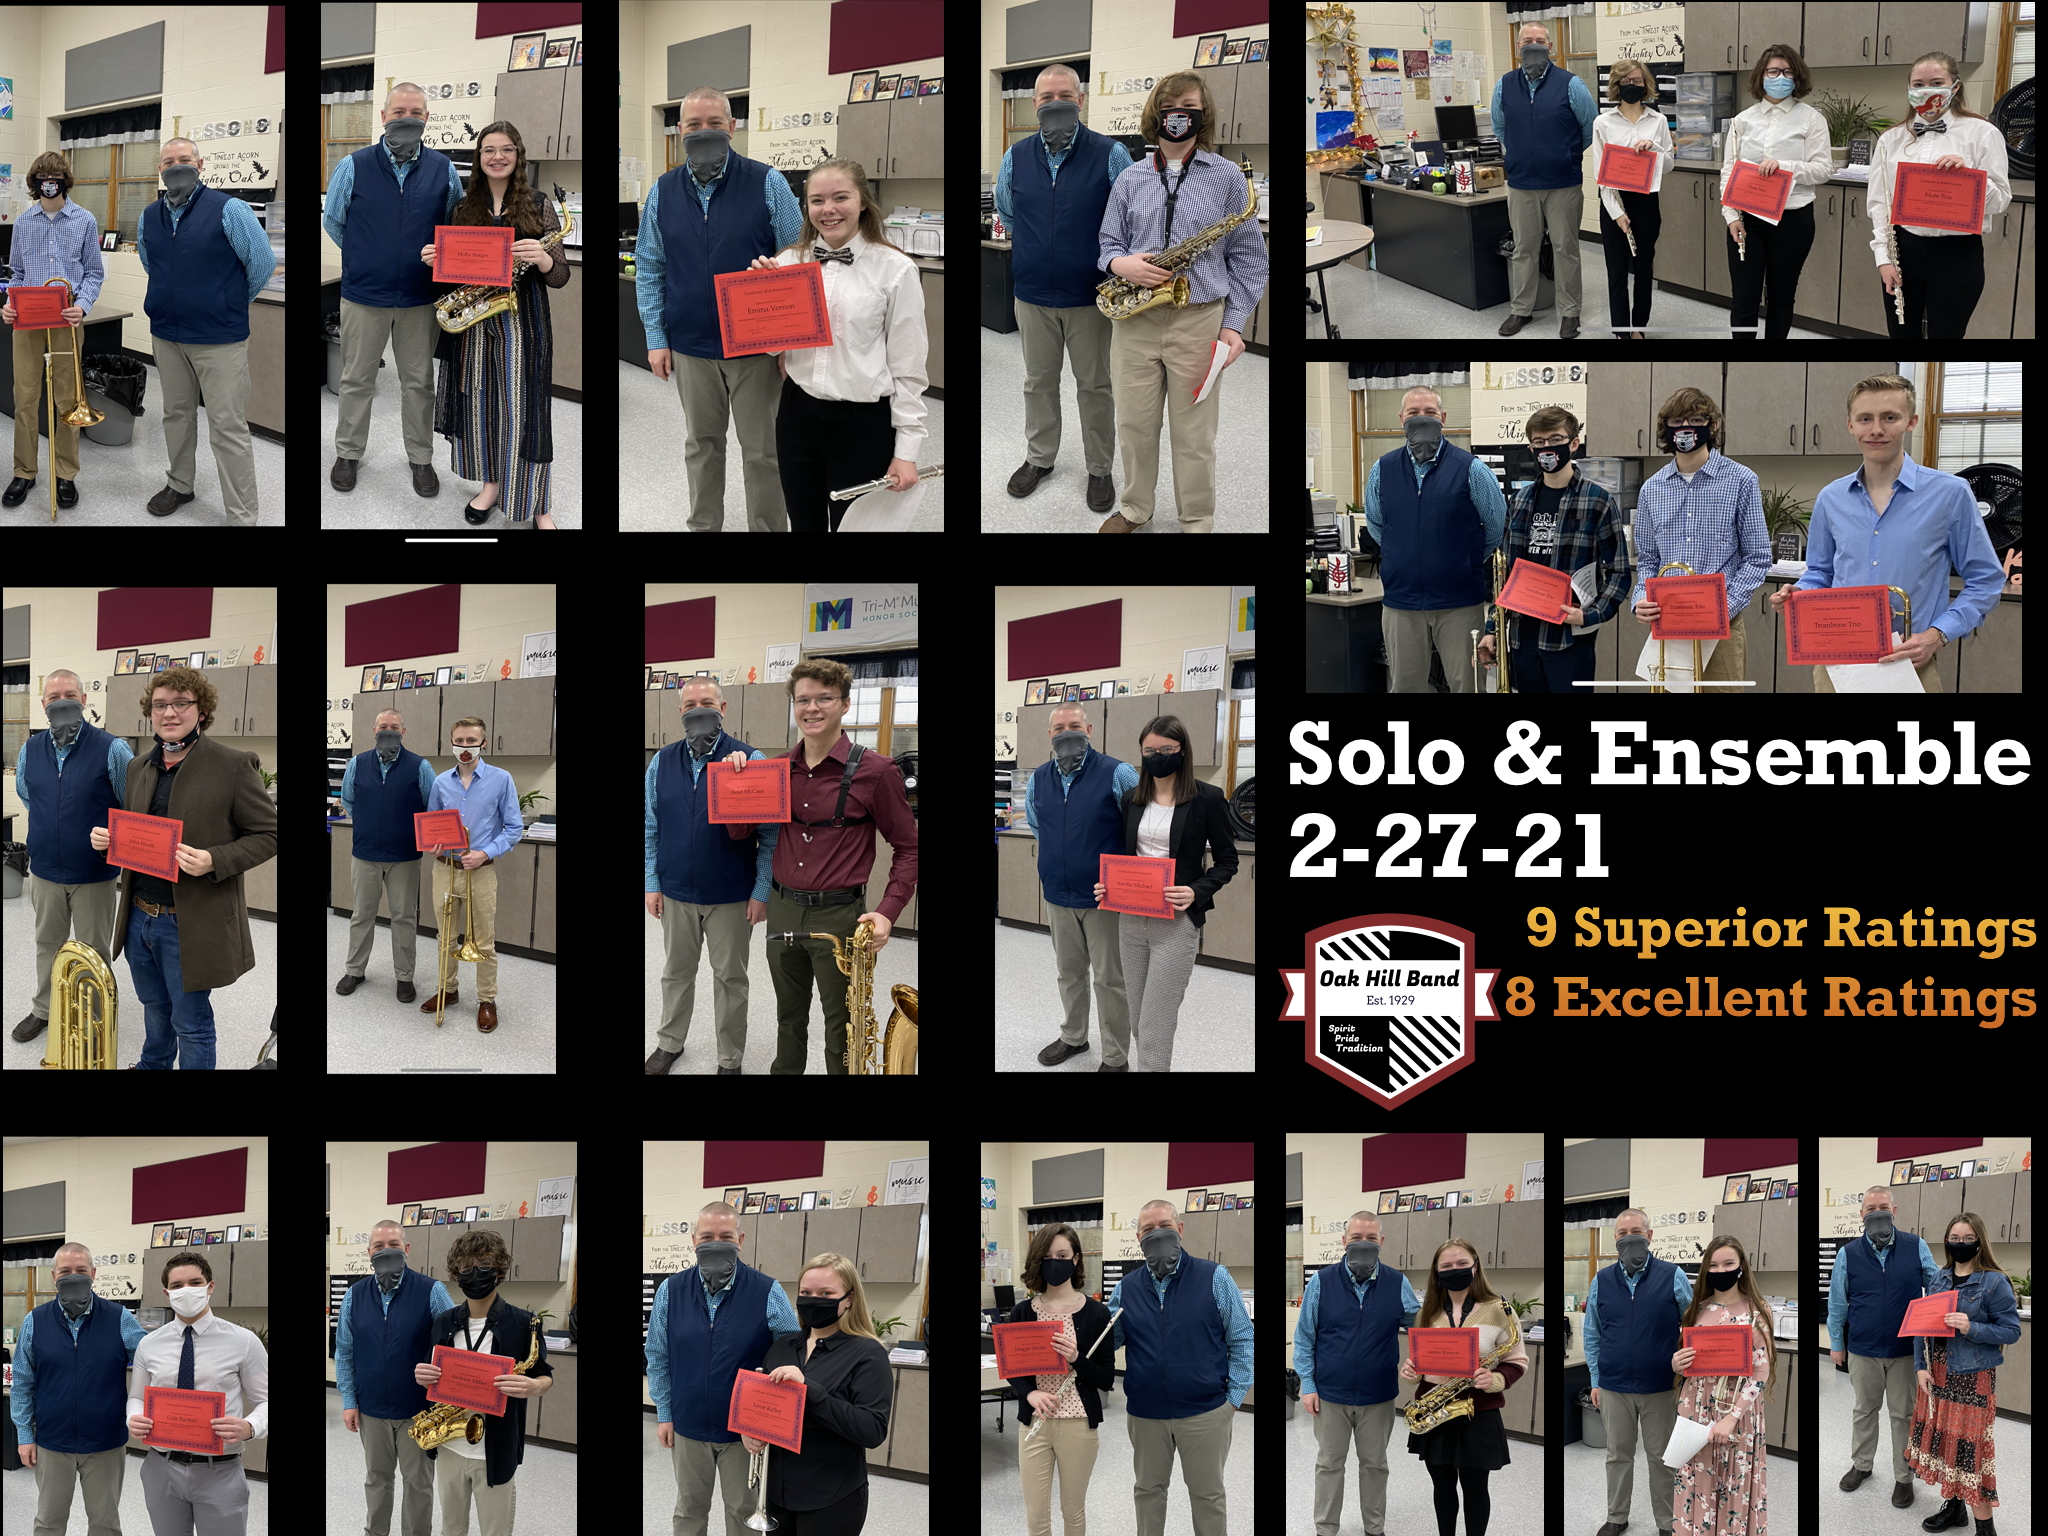 Photos of band members after solo and ensemble